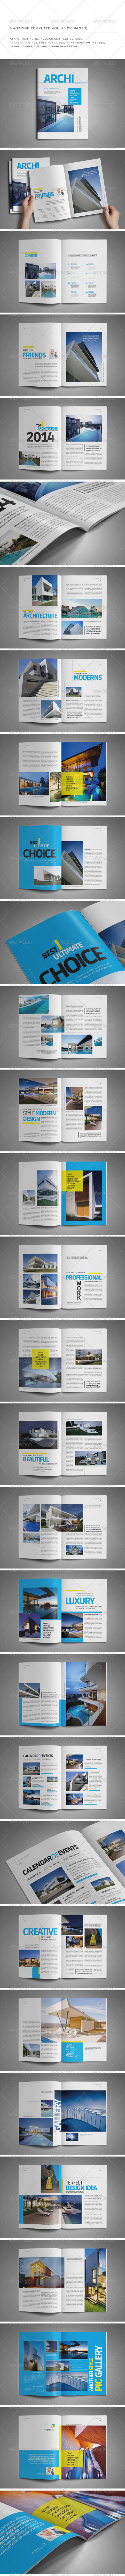 GraphicRiver A5 Portrait 50 Pages MGZ Vol 26 6499047